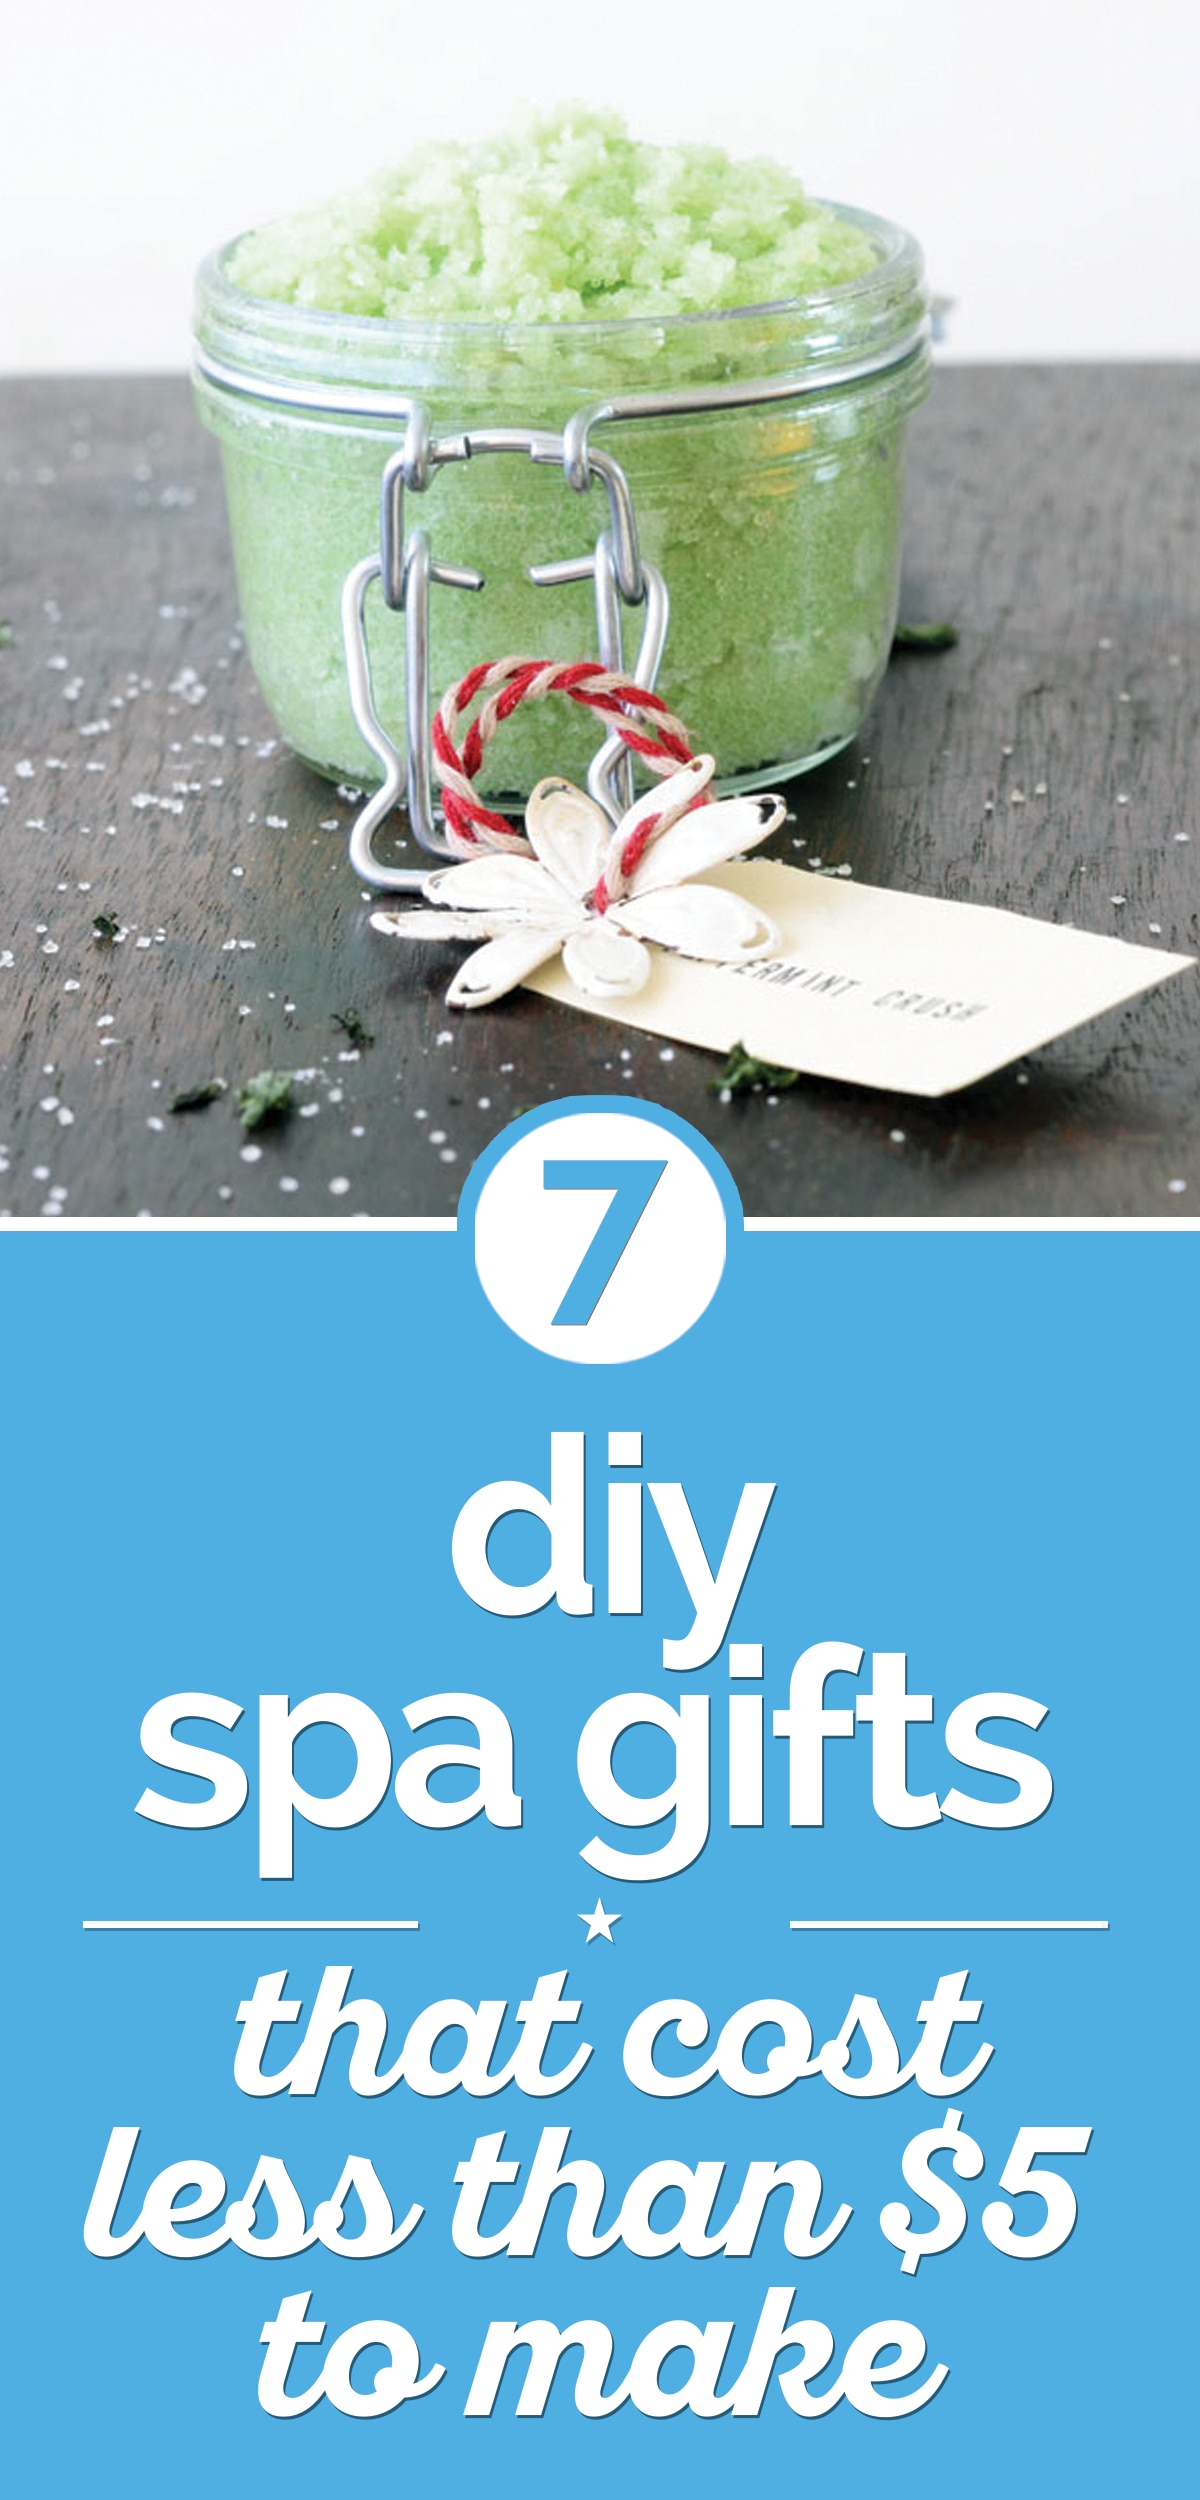 7 DIY Spa Gifts That Cost Less that $5 To Make | thegoodstuff